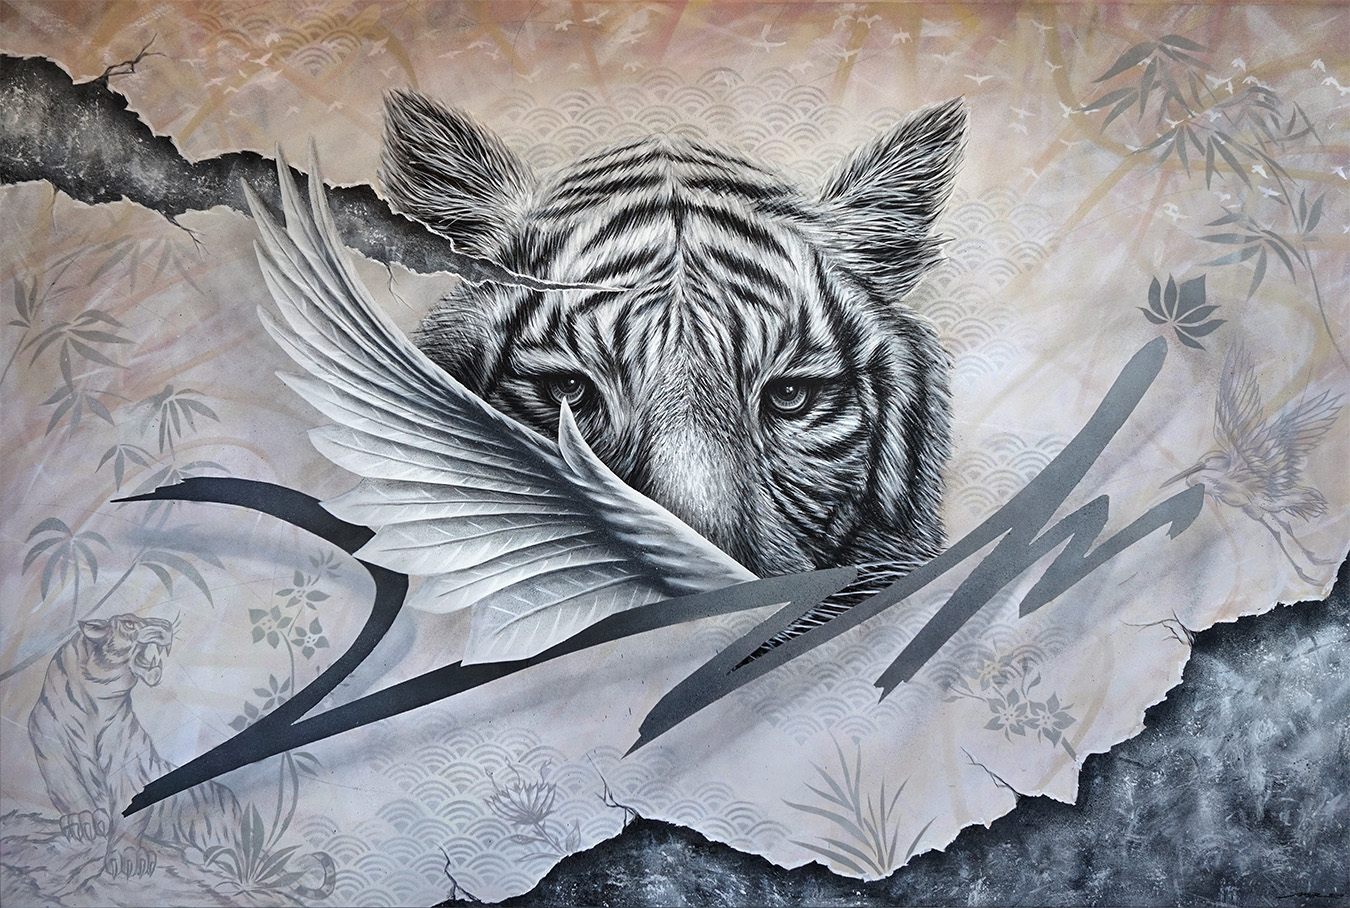 White Tiger - 100 x 150 cm - Acrylic on canvas -  *SOLD*